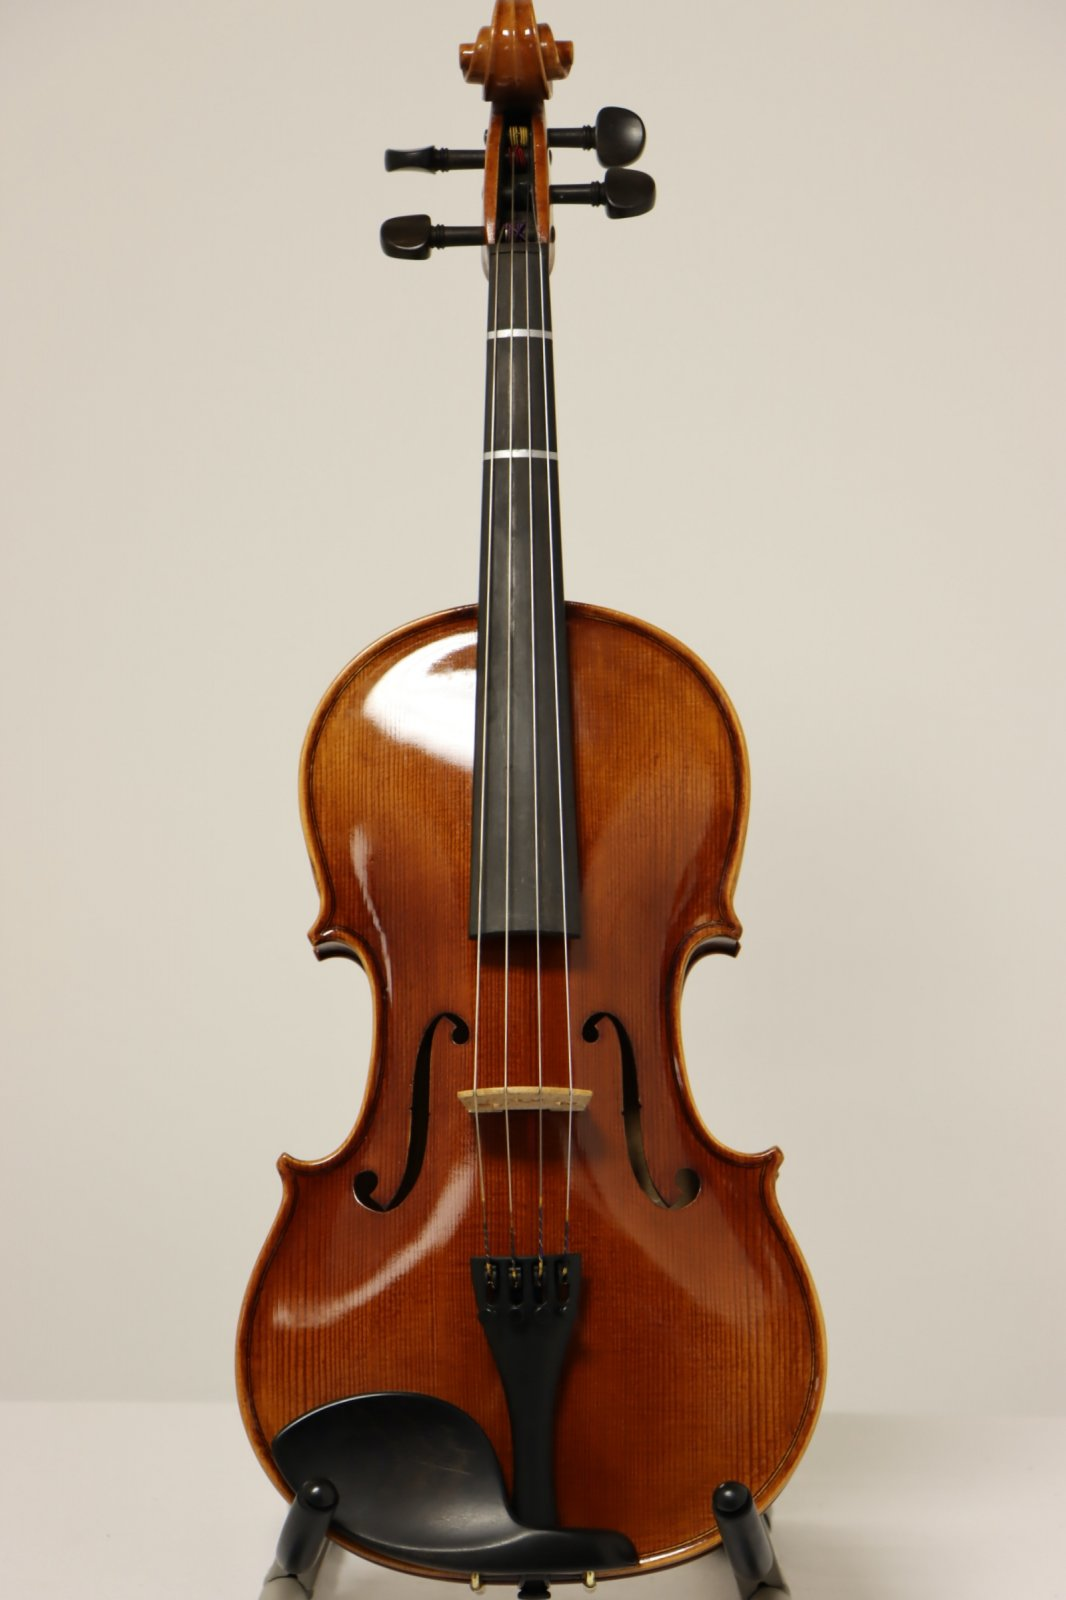 USED Shen 15 SA100 Student Viola Outfit with Hard Case, Bow, and Kun Shoulder Rest